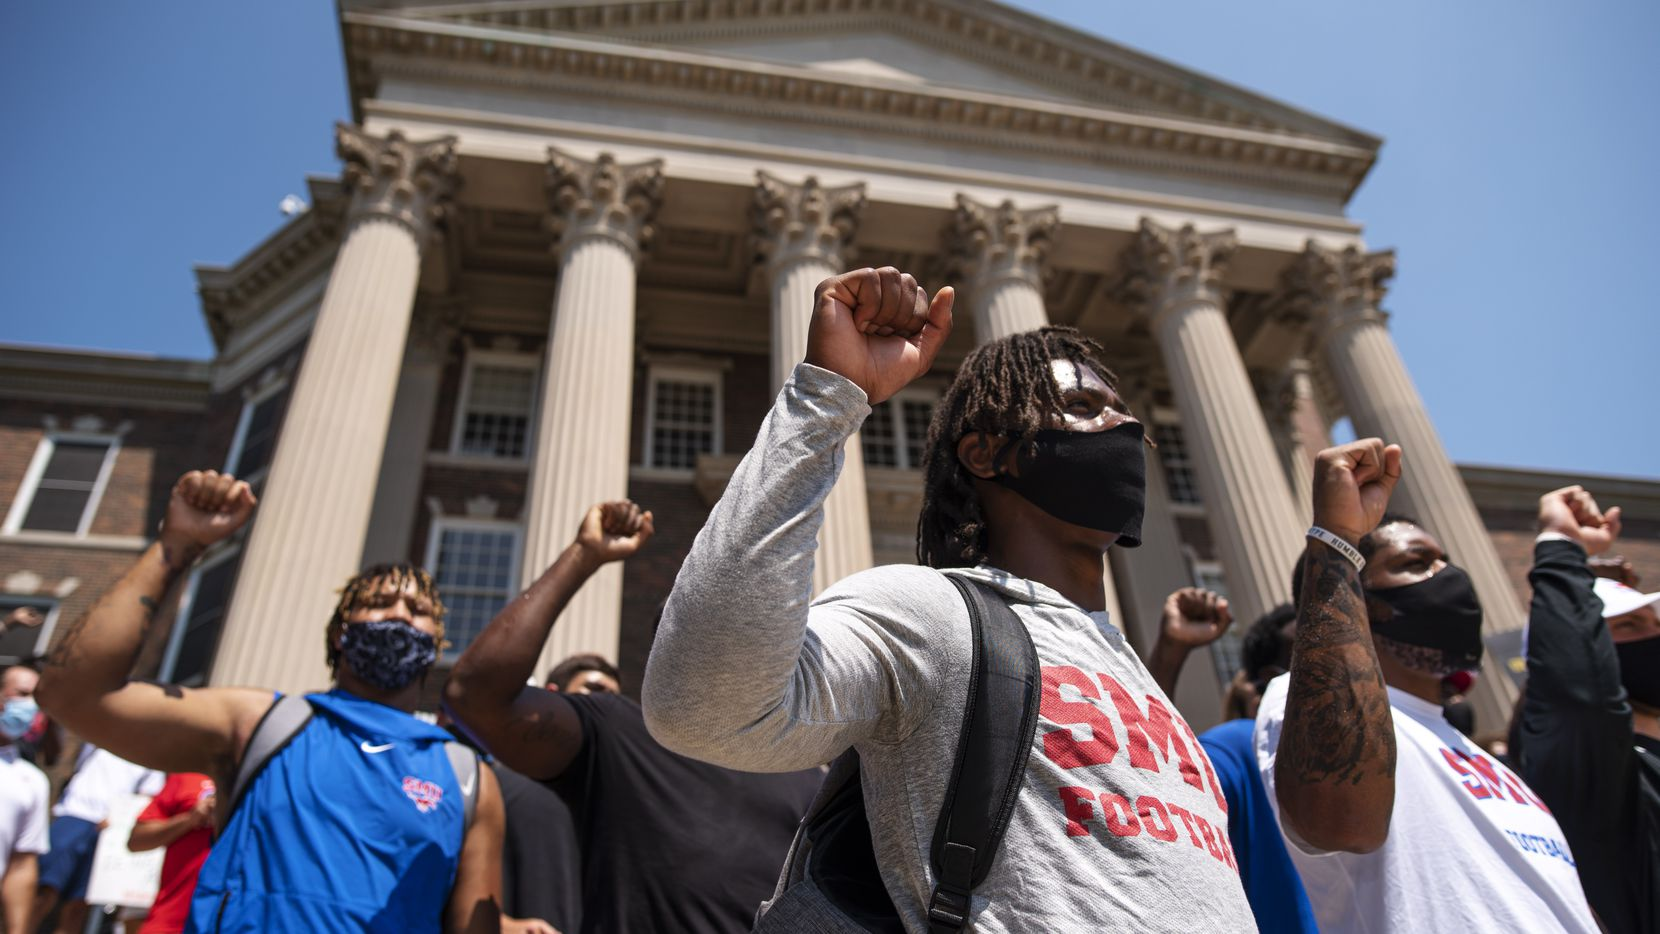 SMU football player Brandon Crossley, center, puts his fist in the air with other Black student athletes as they chant outside of Dallas Hall during a Black Lives Matter movement march on the campus in Dallas, Aug. 28, 2020. (Ben Torres/Special Contributor)